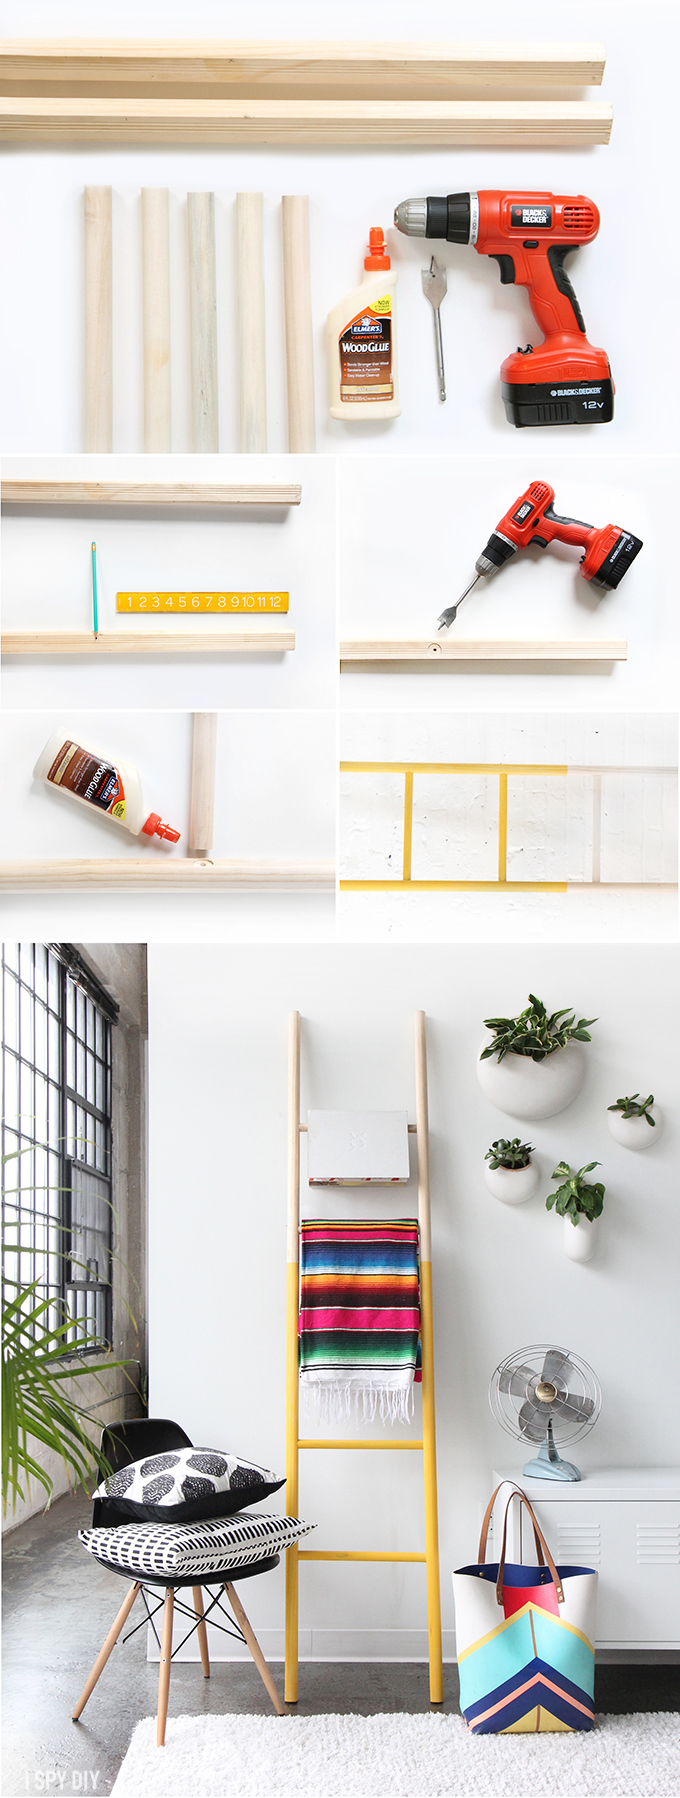 ispydiy_ladder_steps